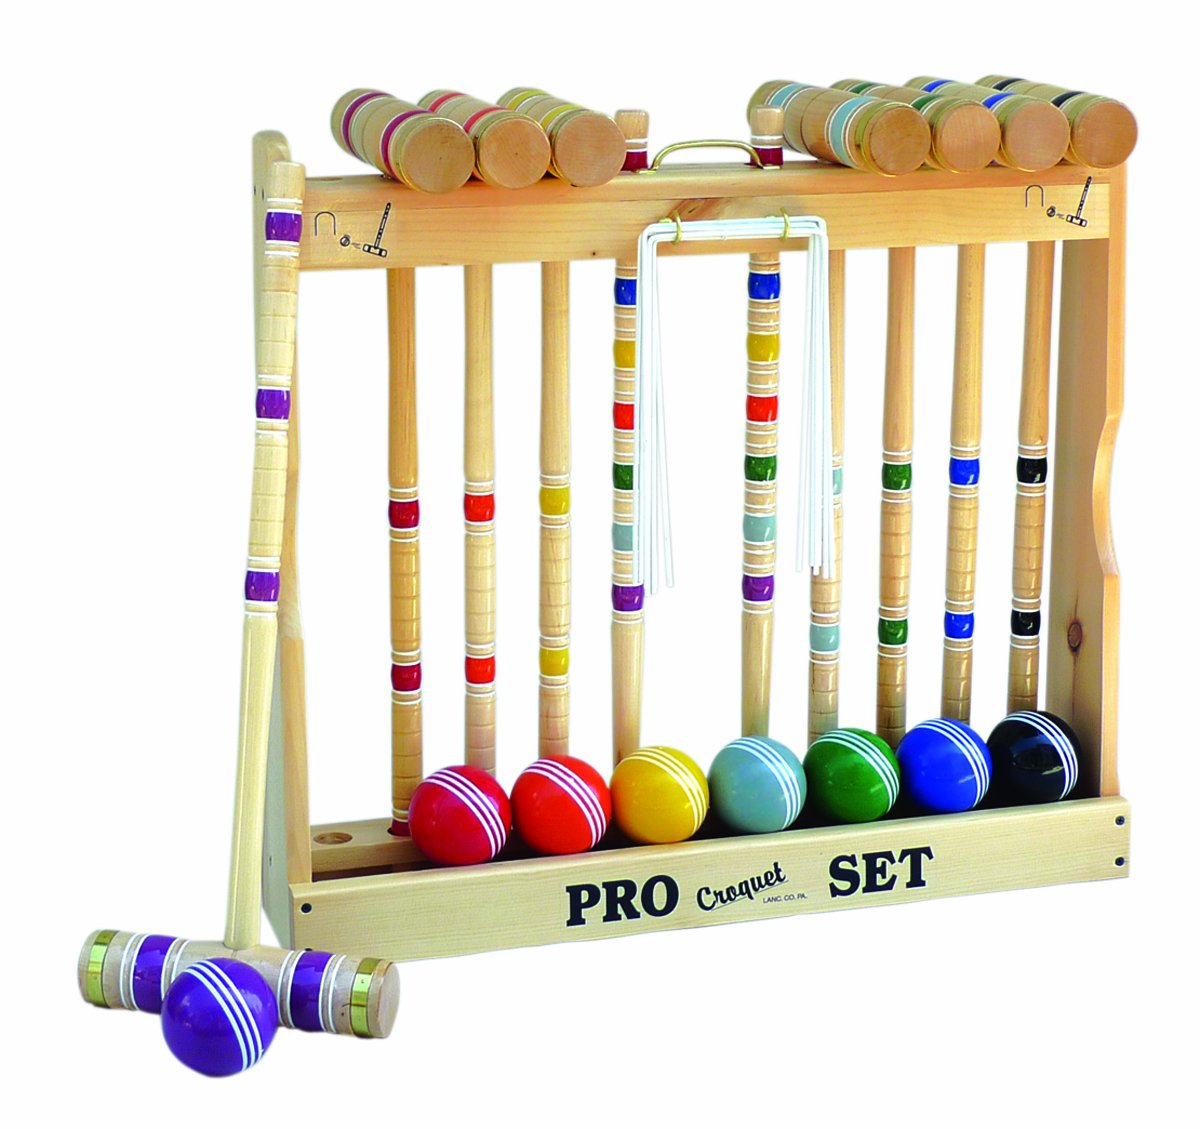 Amish-Crafted Deluxe Wooden Croquet Game Set, 8 Player (32'' Handles)